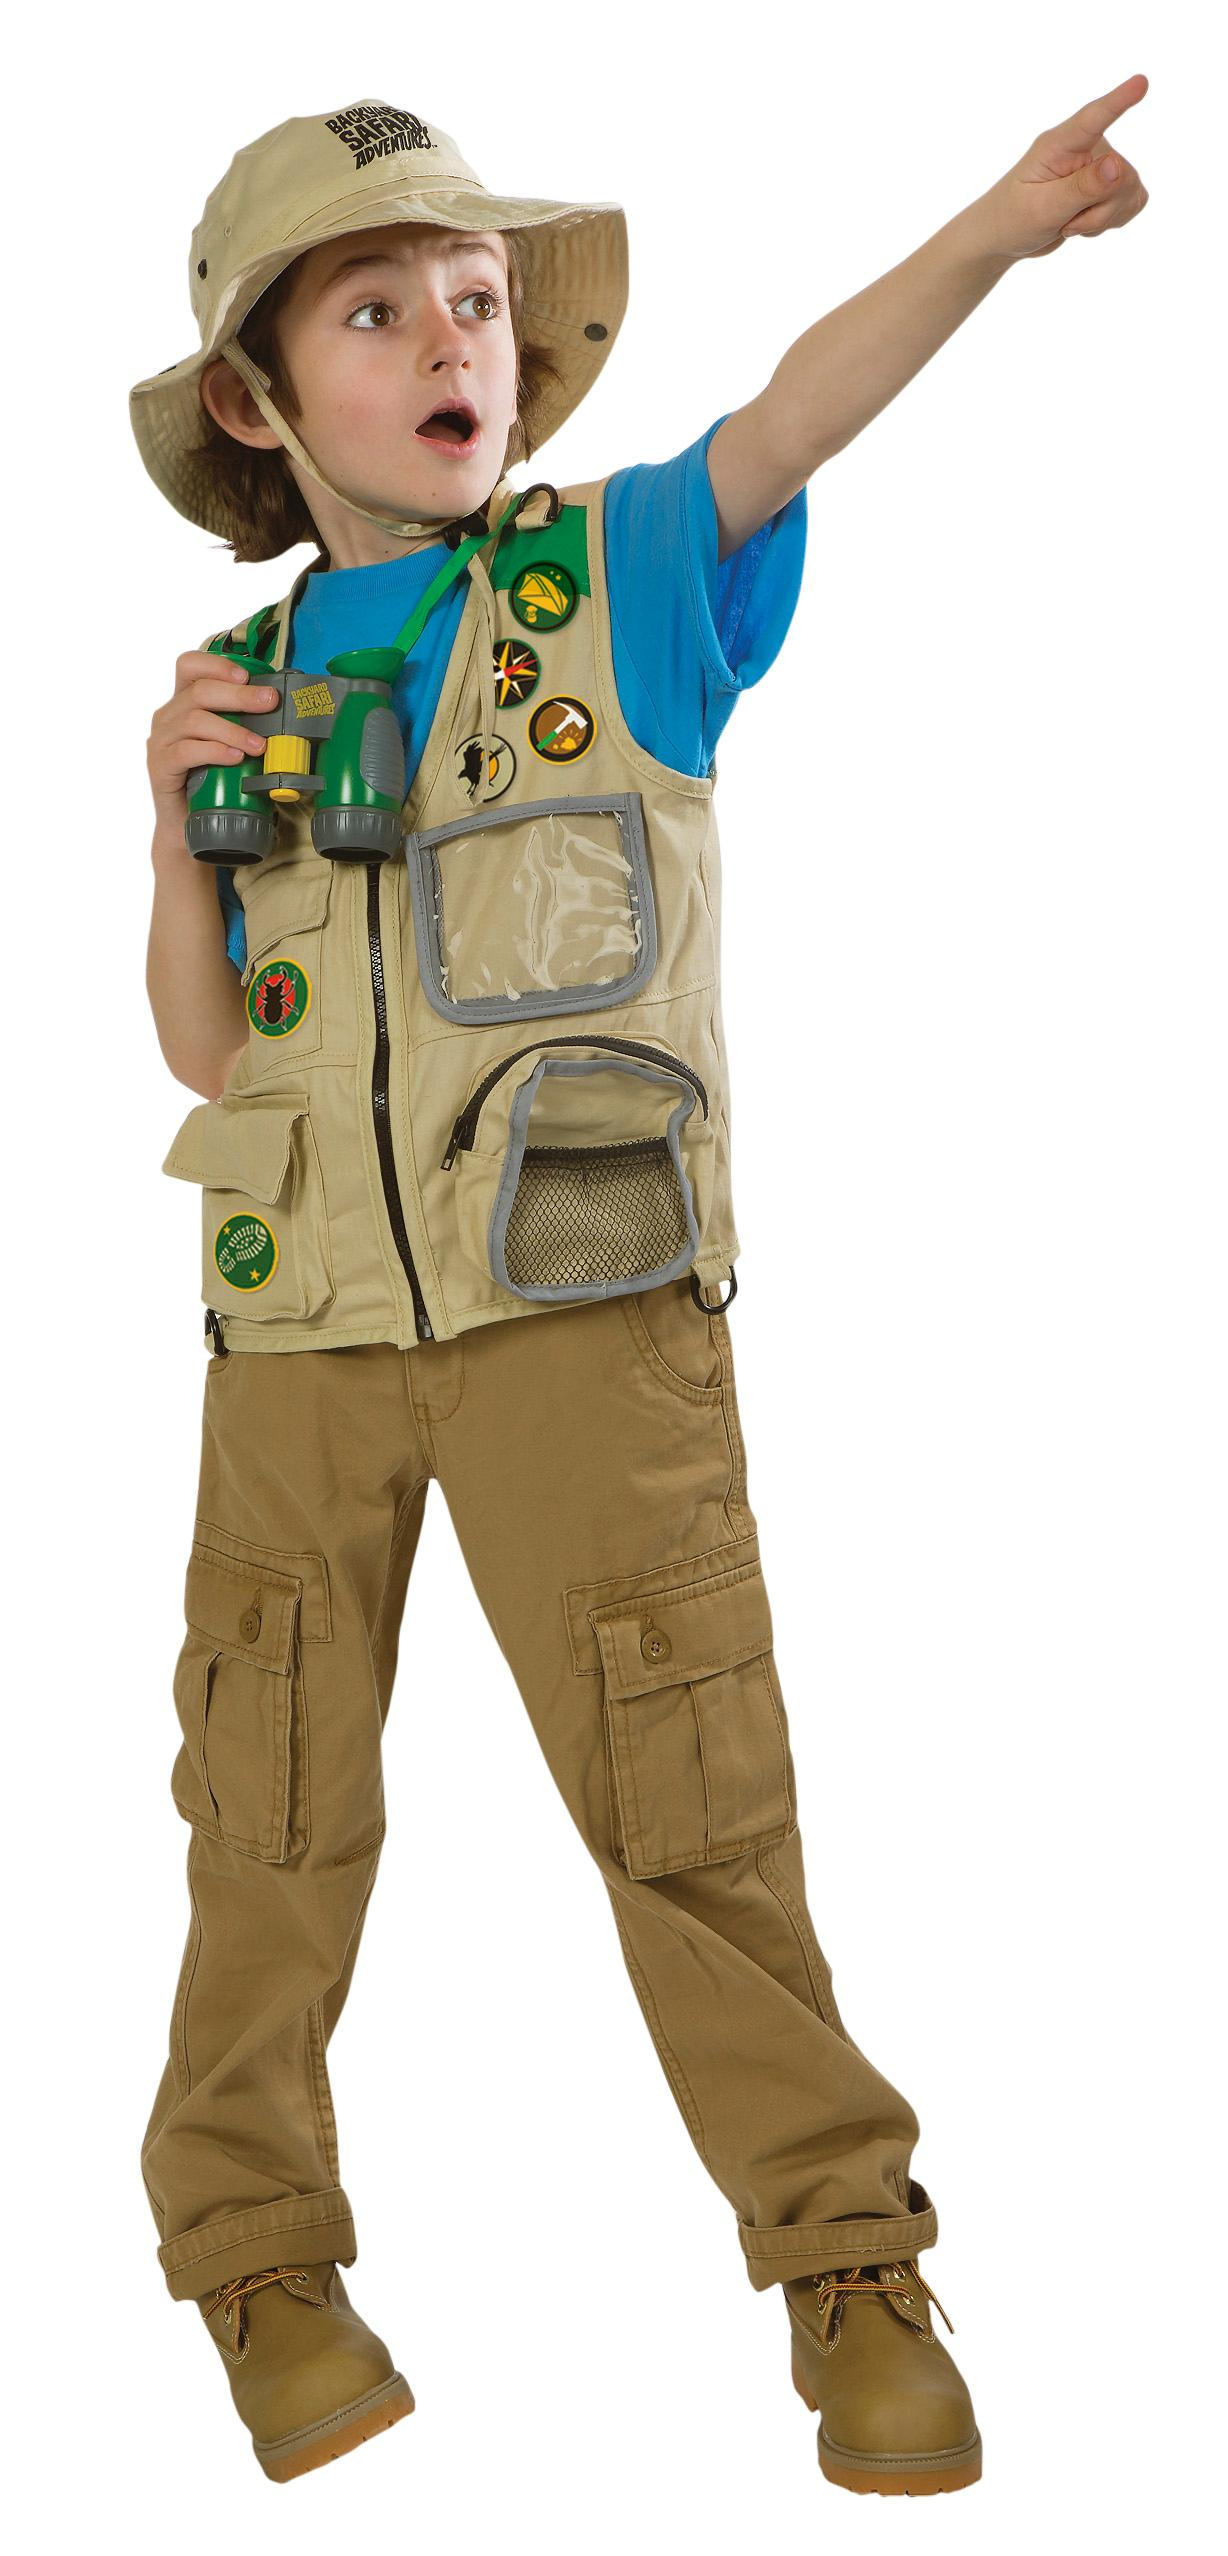 Amazon.com: Backyard Safari Cargo Vest: Toys & Games